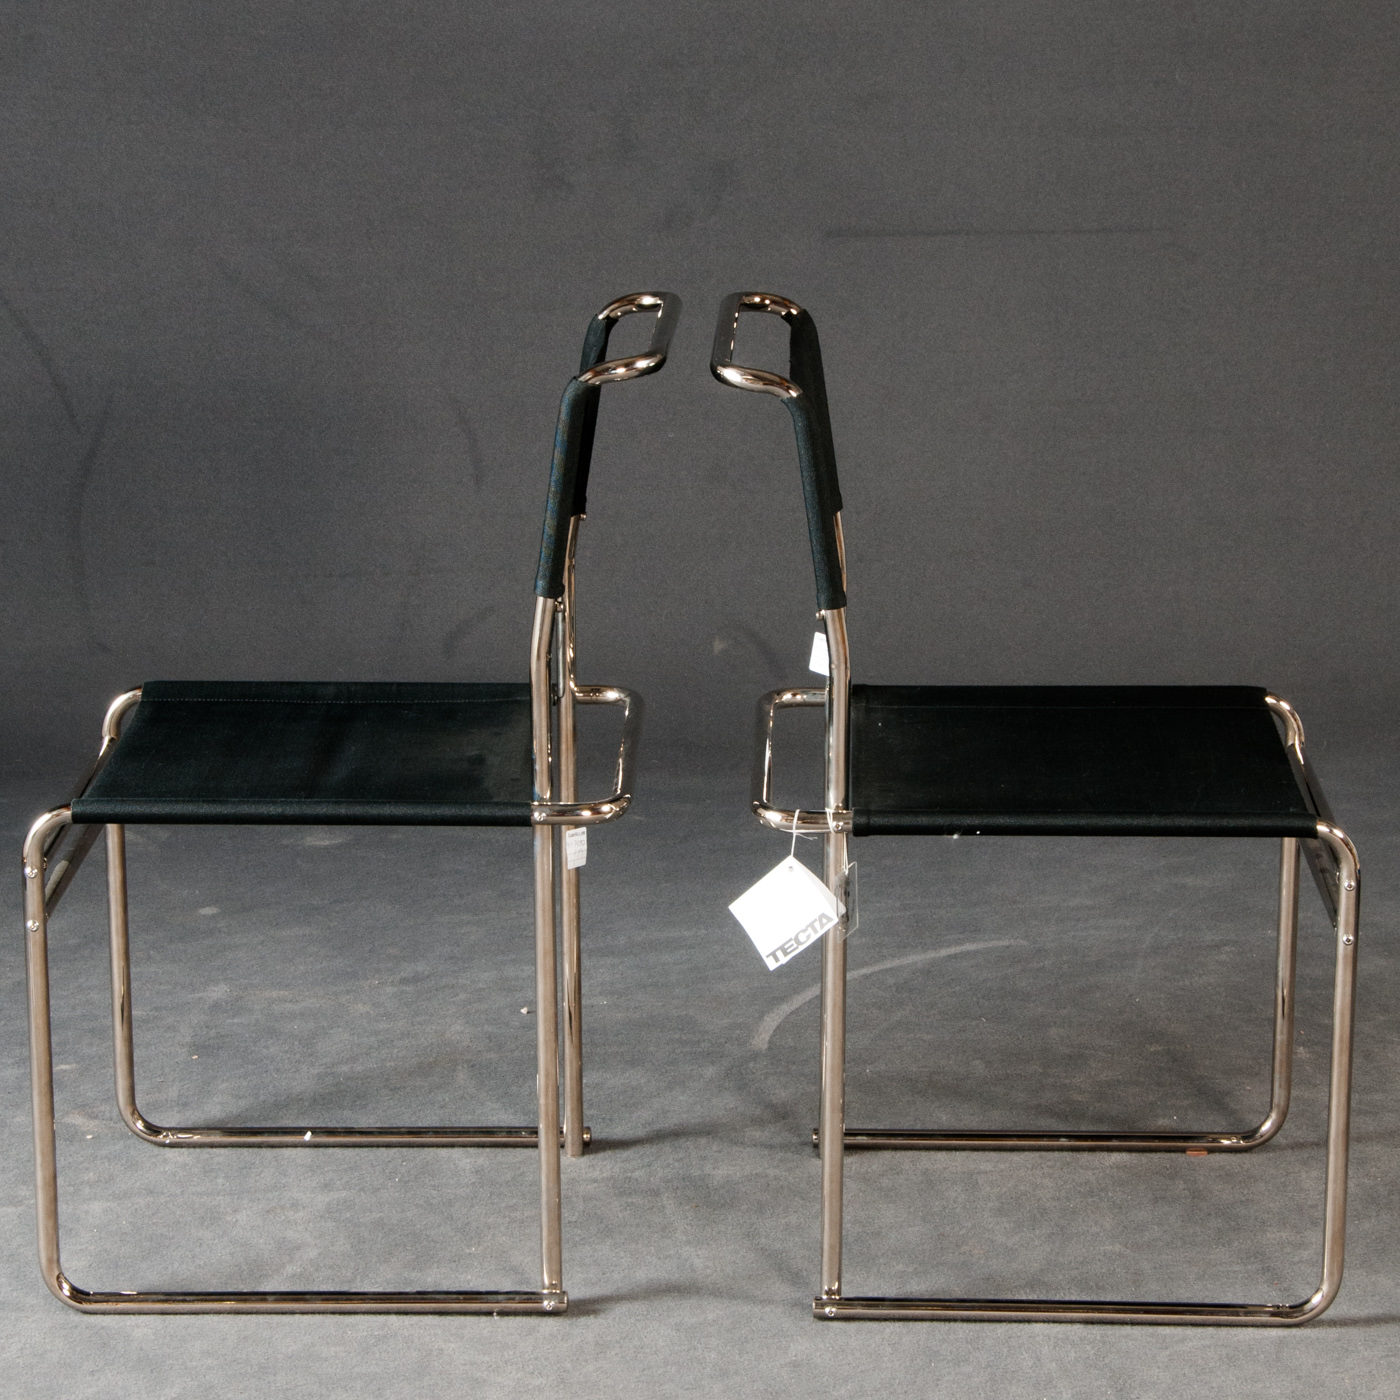 Marcel Breuer, Two chairs, model B 40 for Tecta (2).